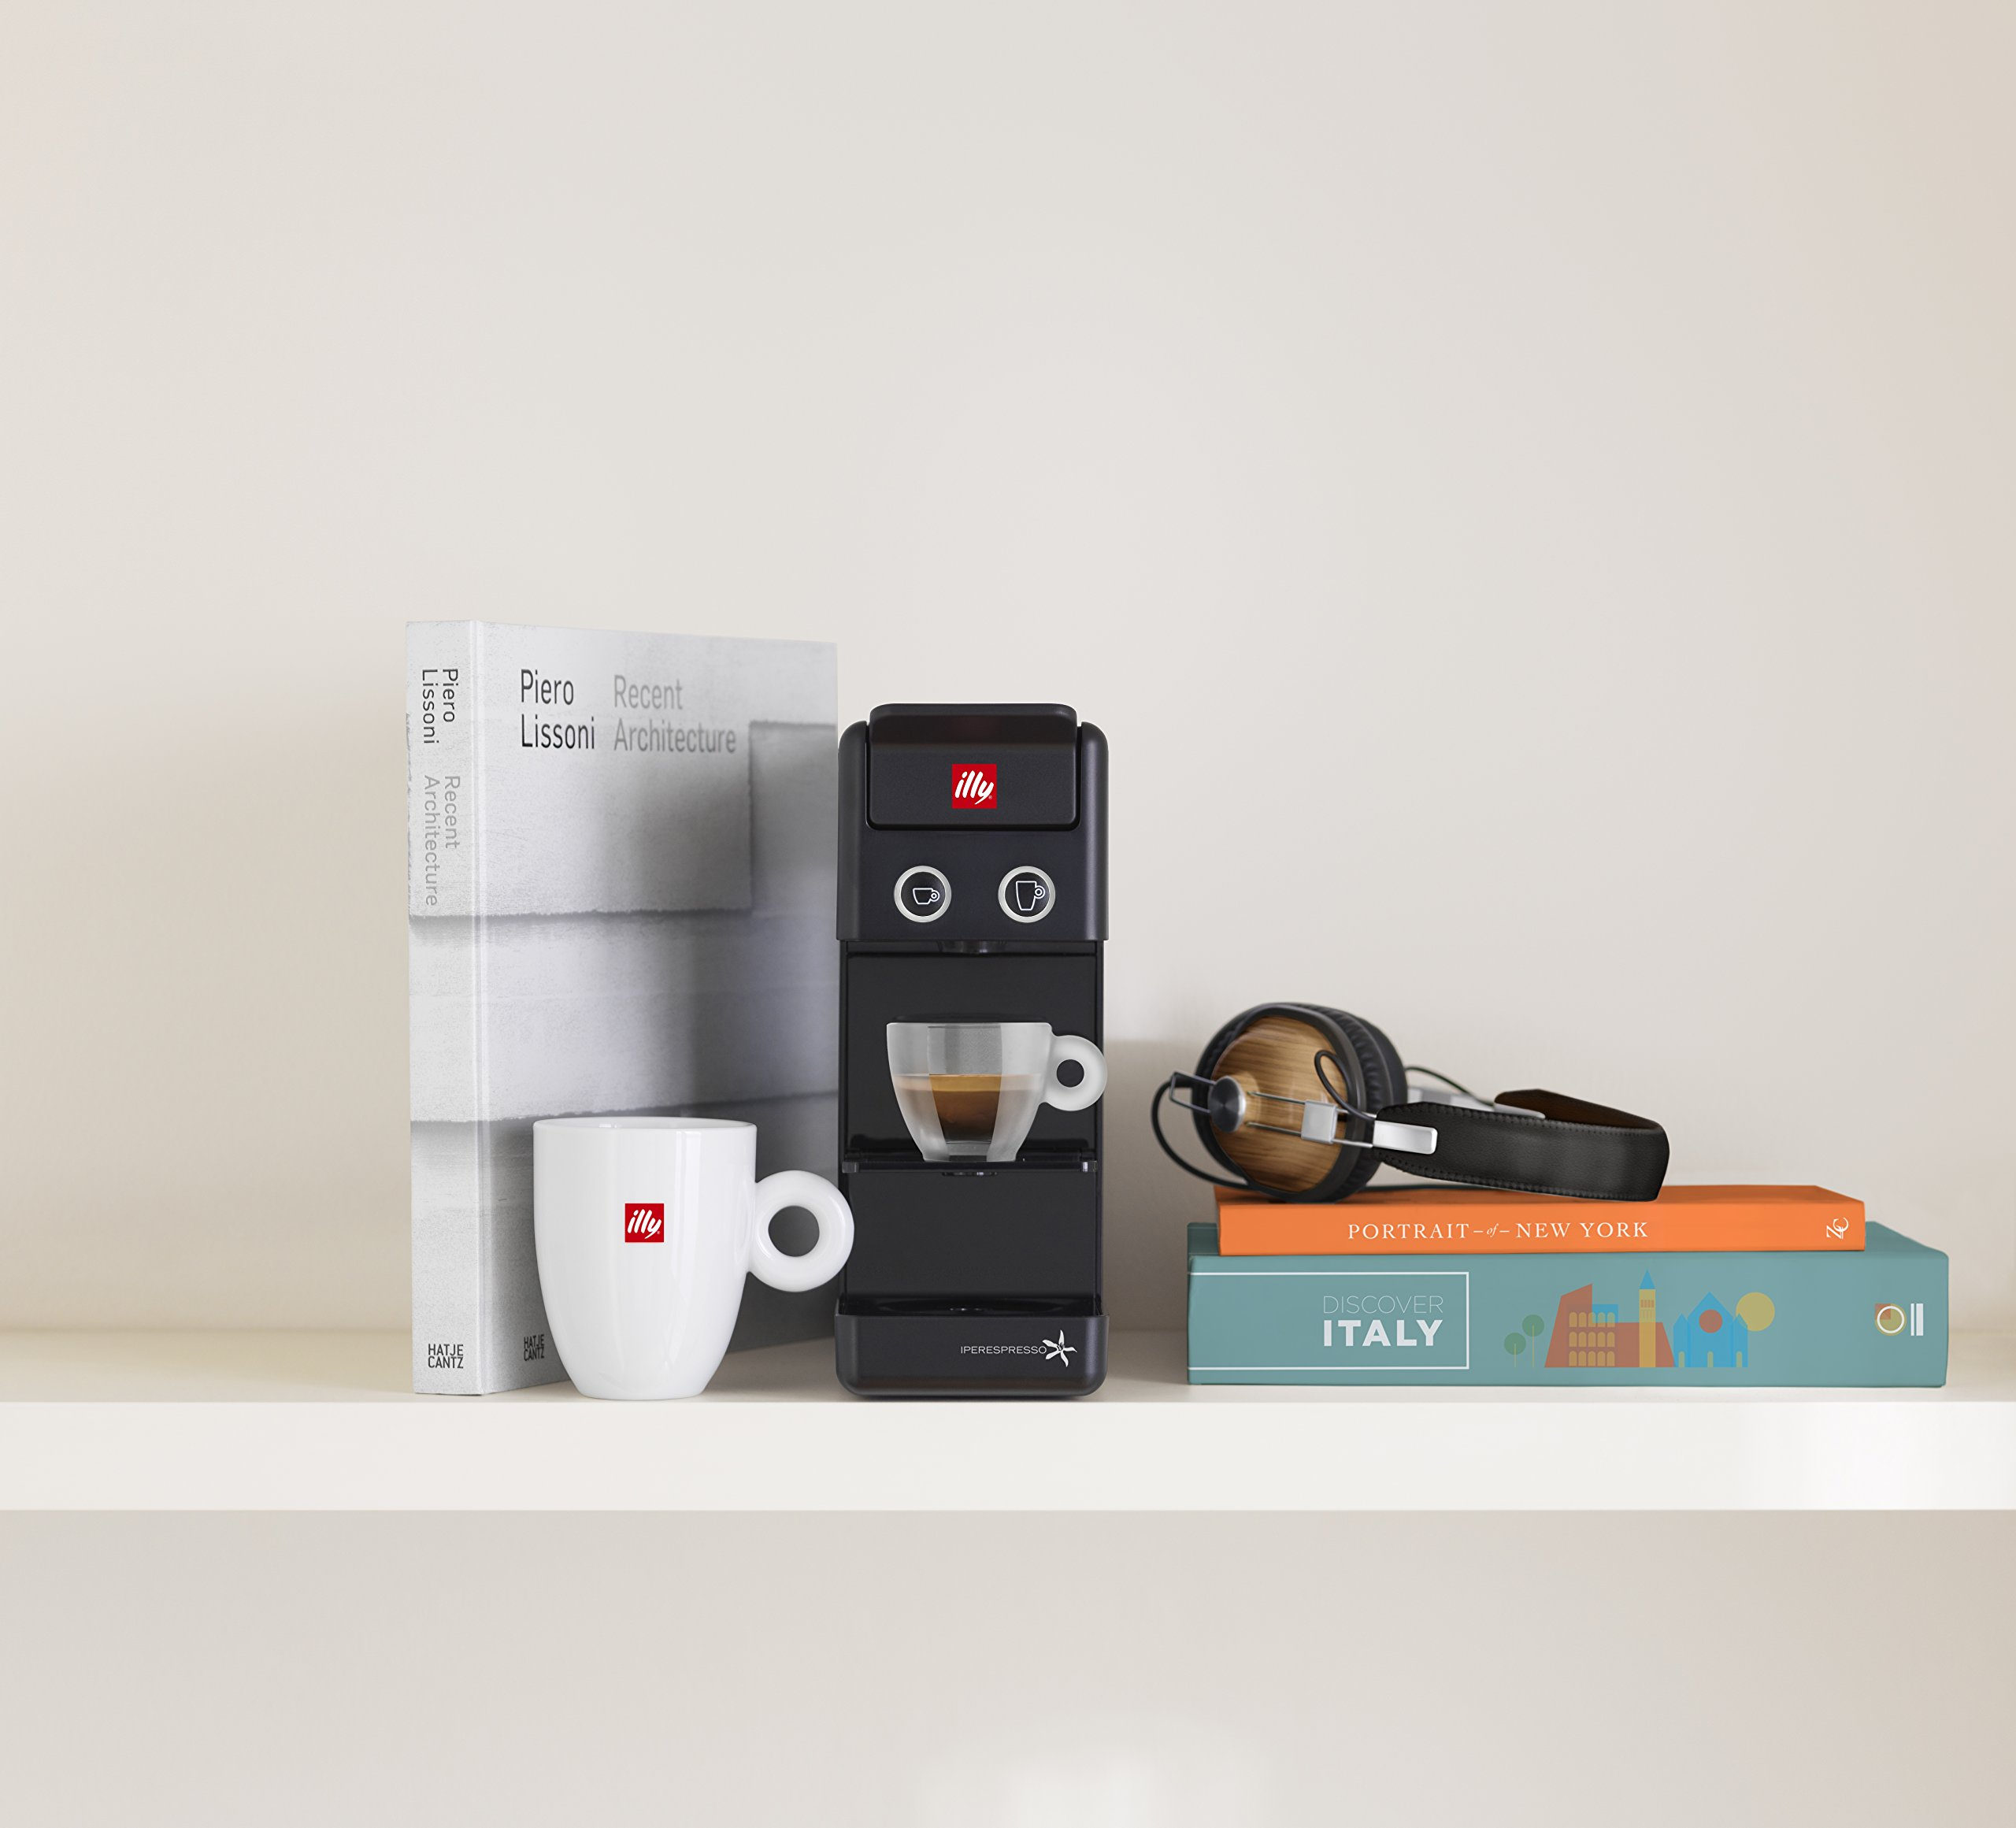 Illy 60296 y3.2 Espresso and Coffee Machine, 12.20x3.9x10.40, Black by Illy